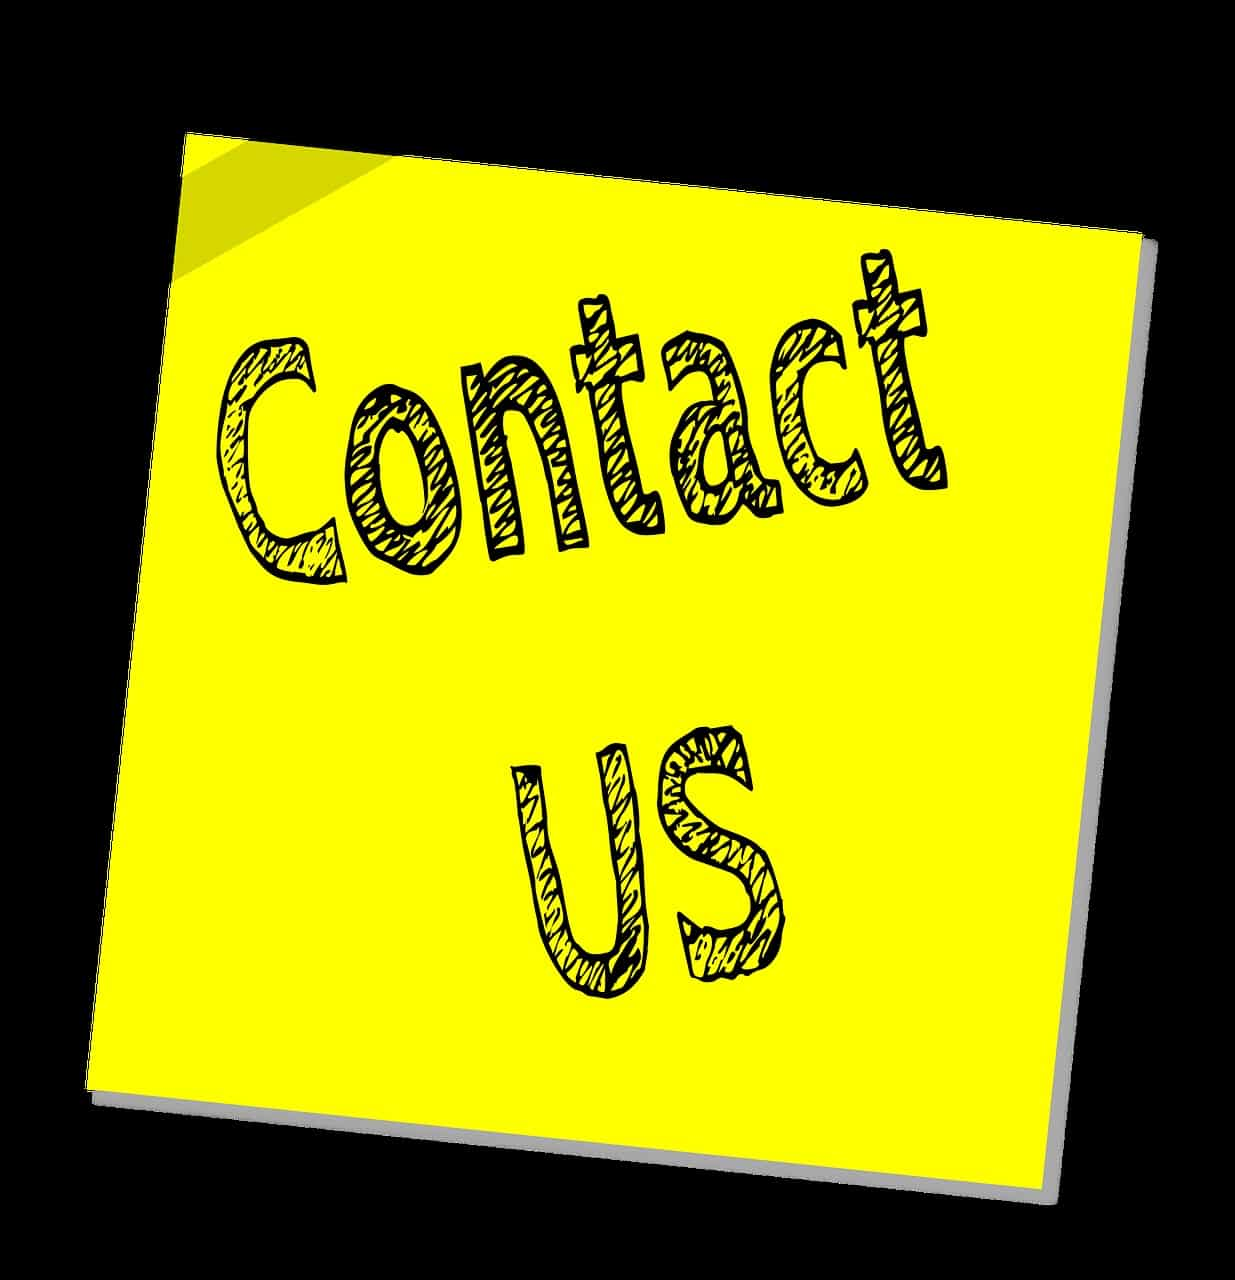 contact us, business, service